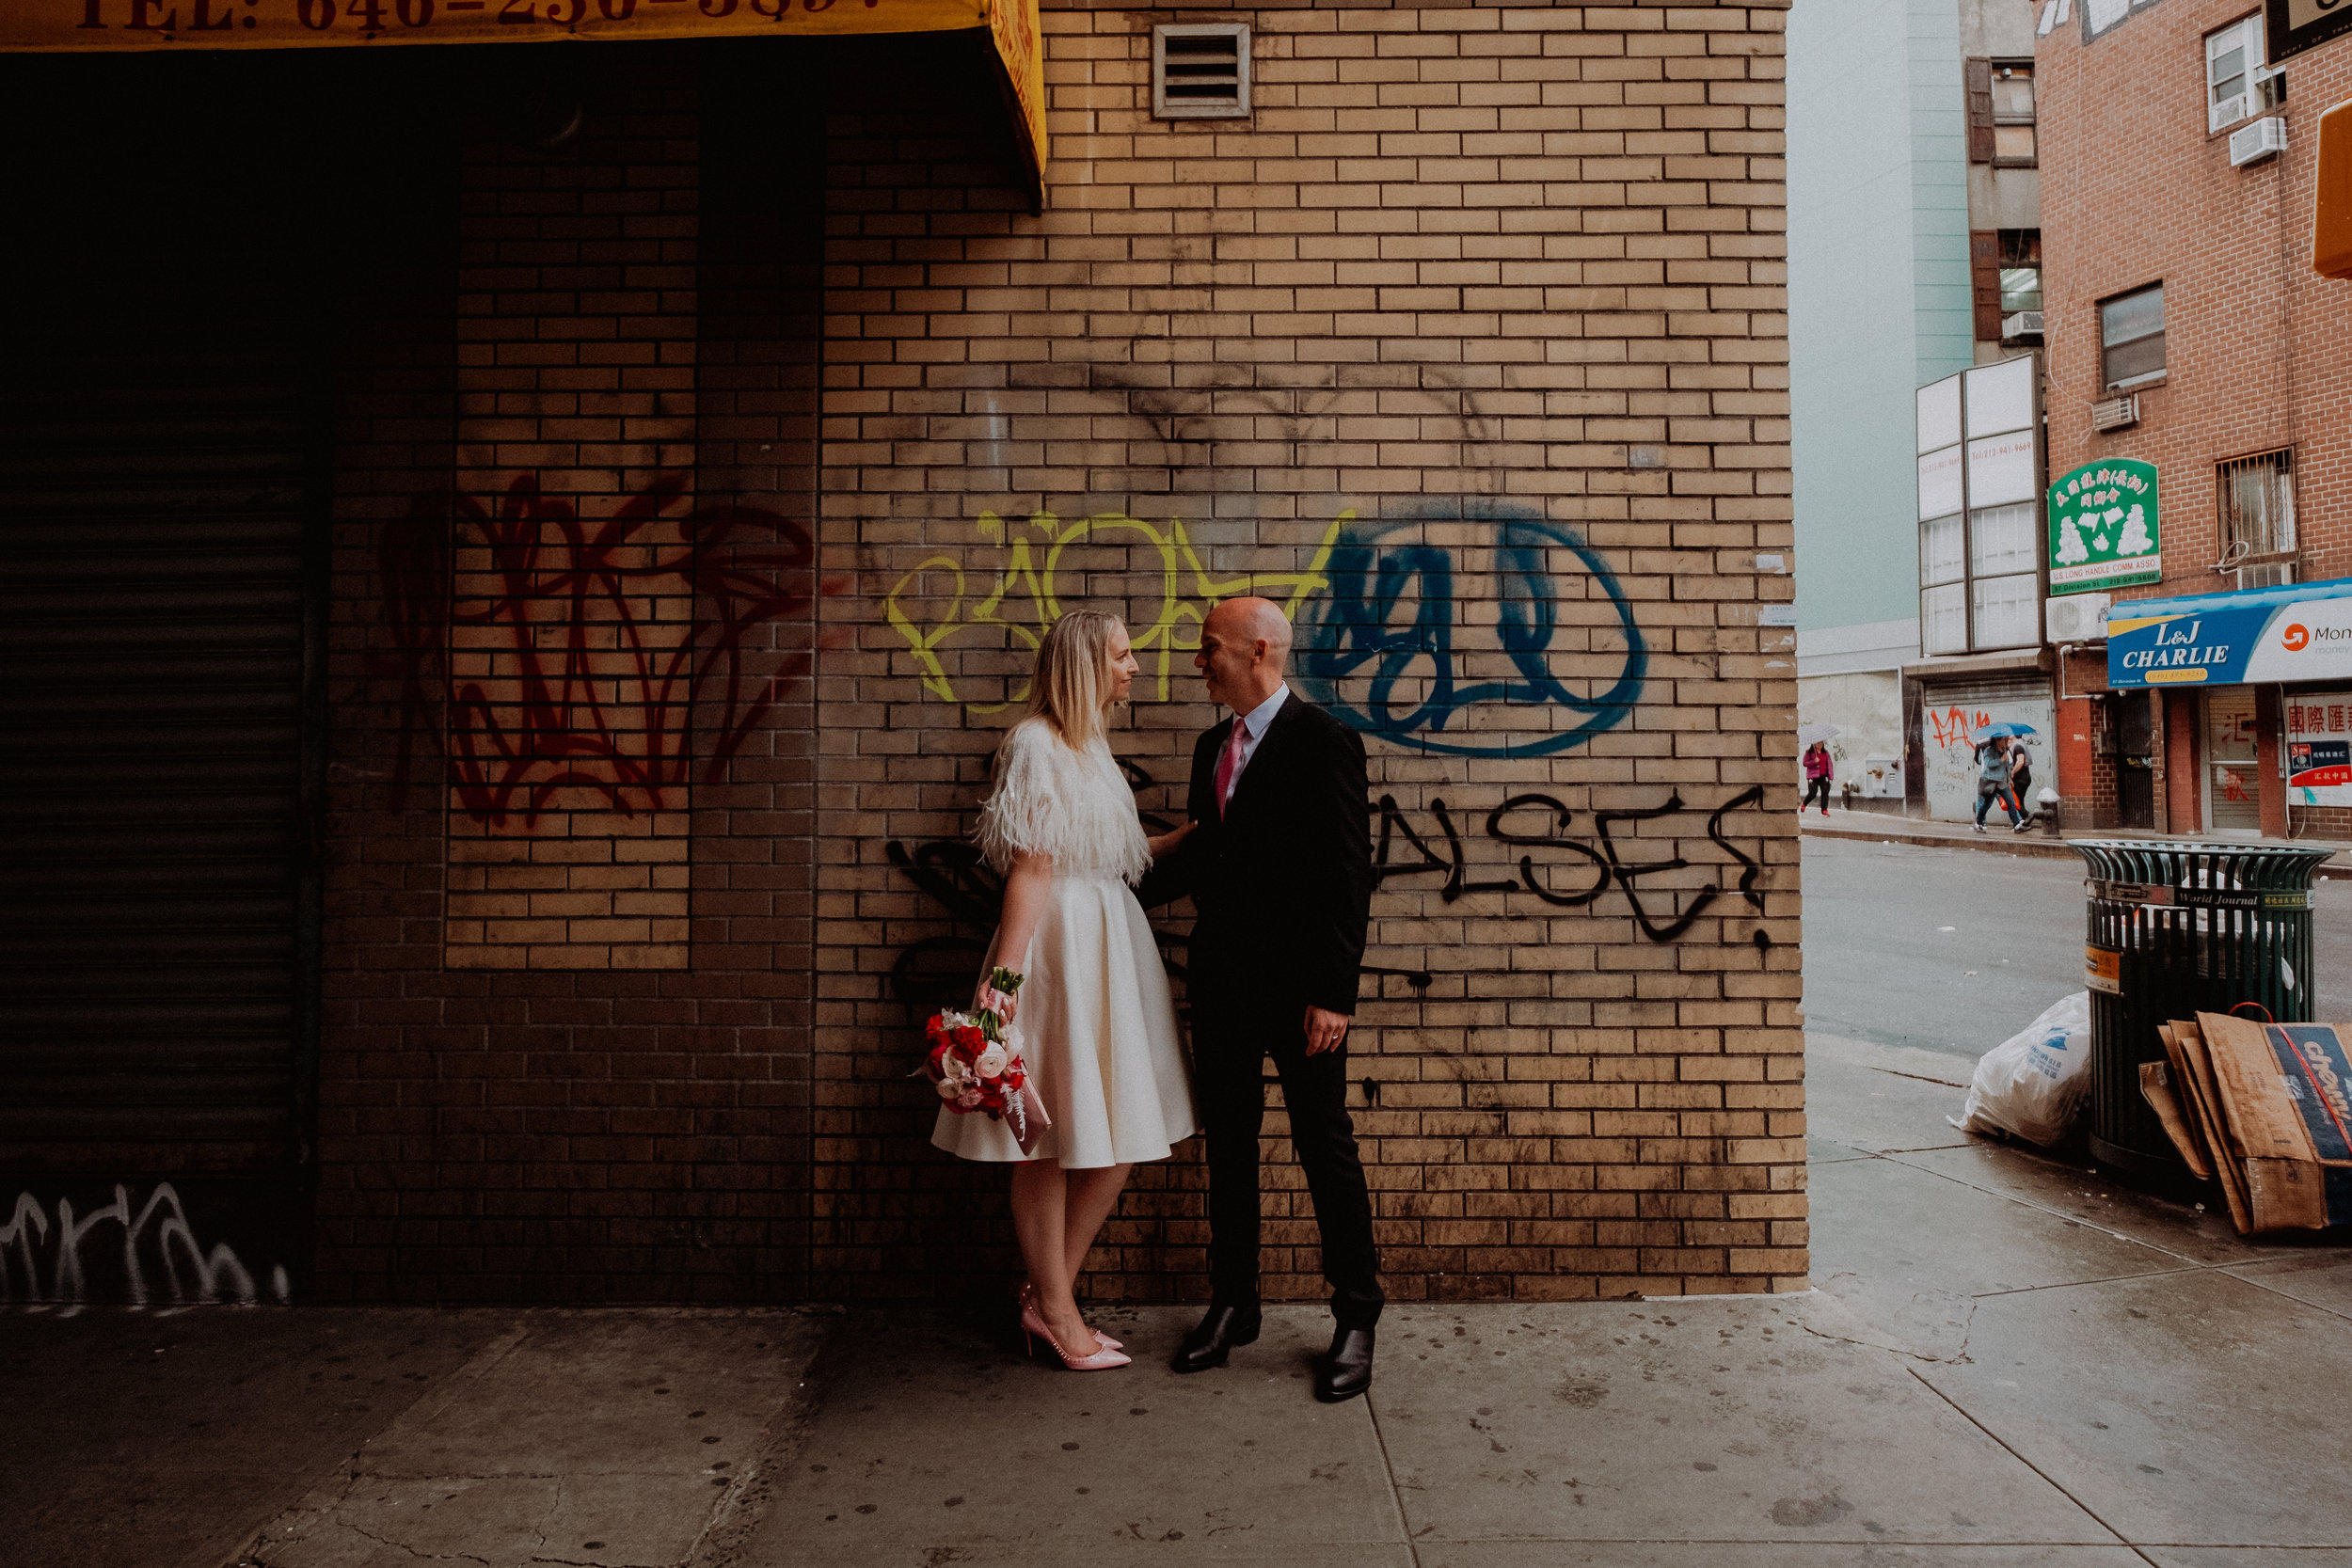 Brooklyn_City_Hall_Elopement_Photographer_Chellise_Michael_Photography261.JPG